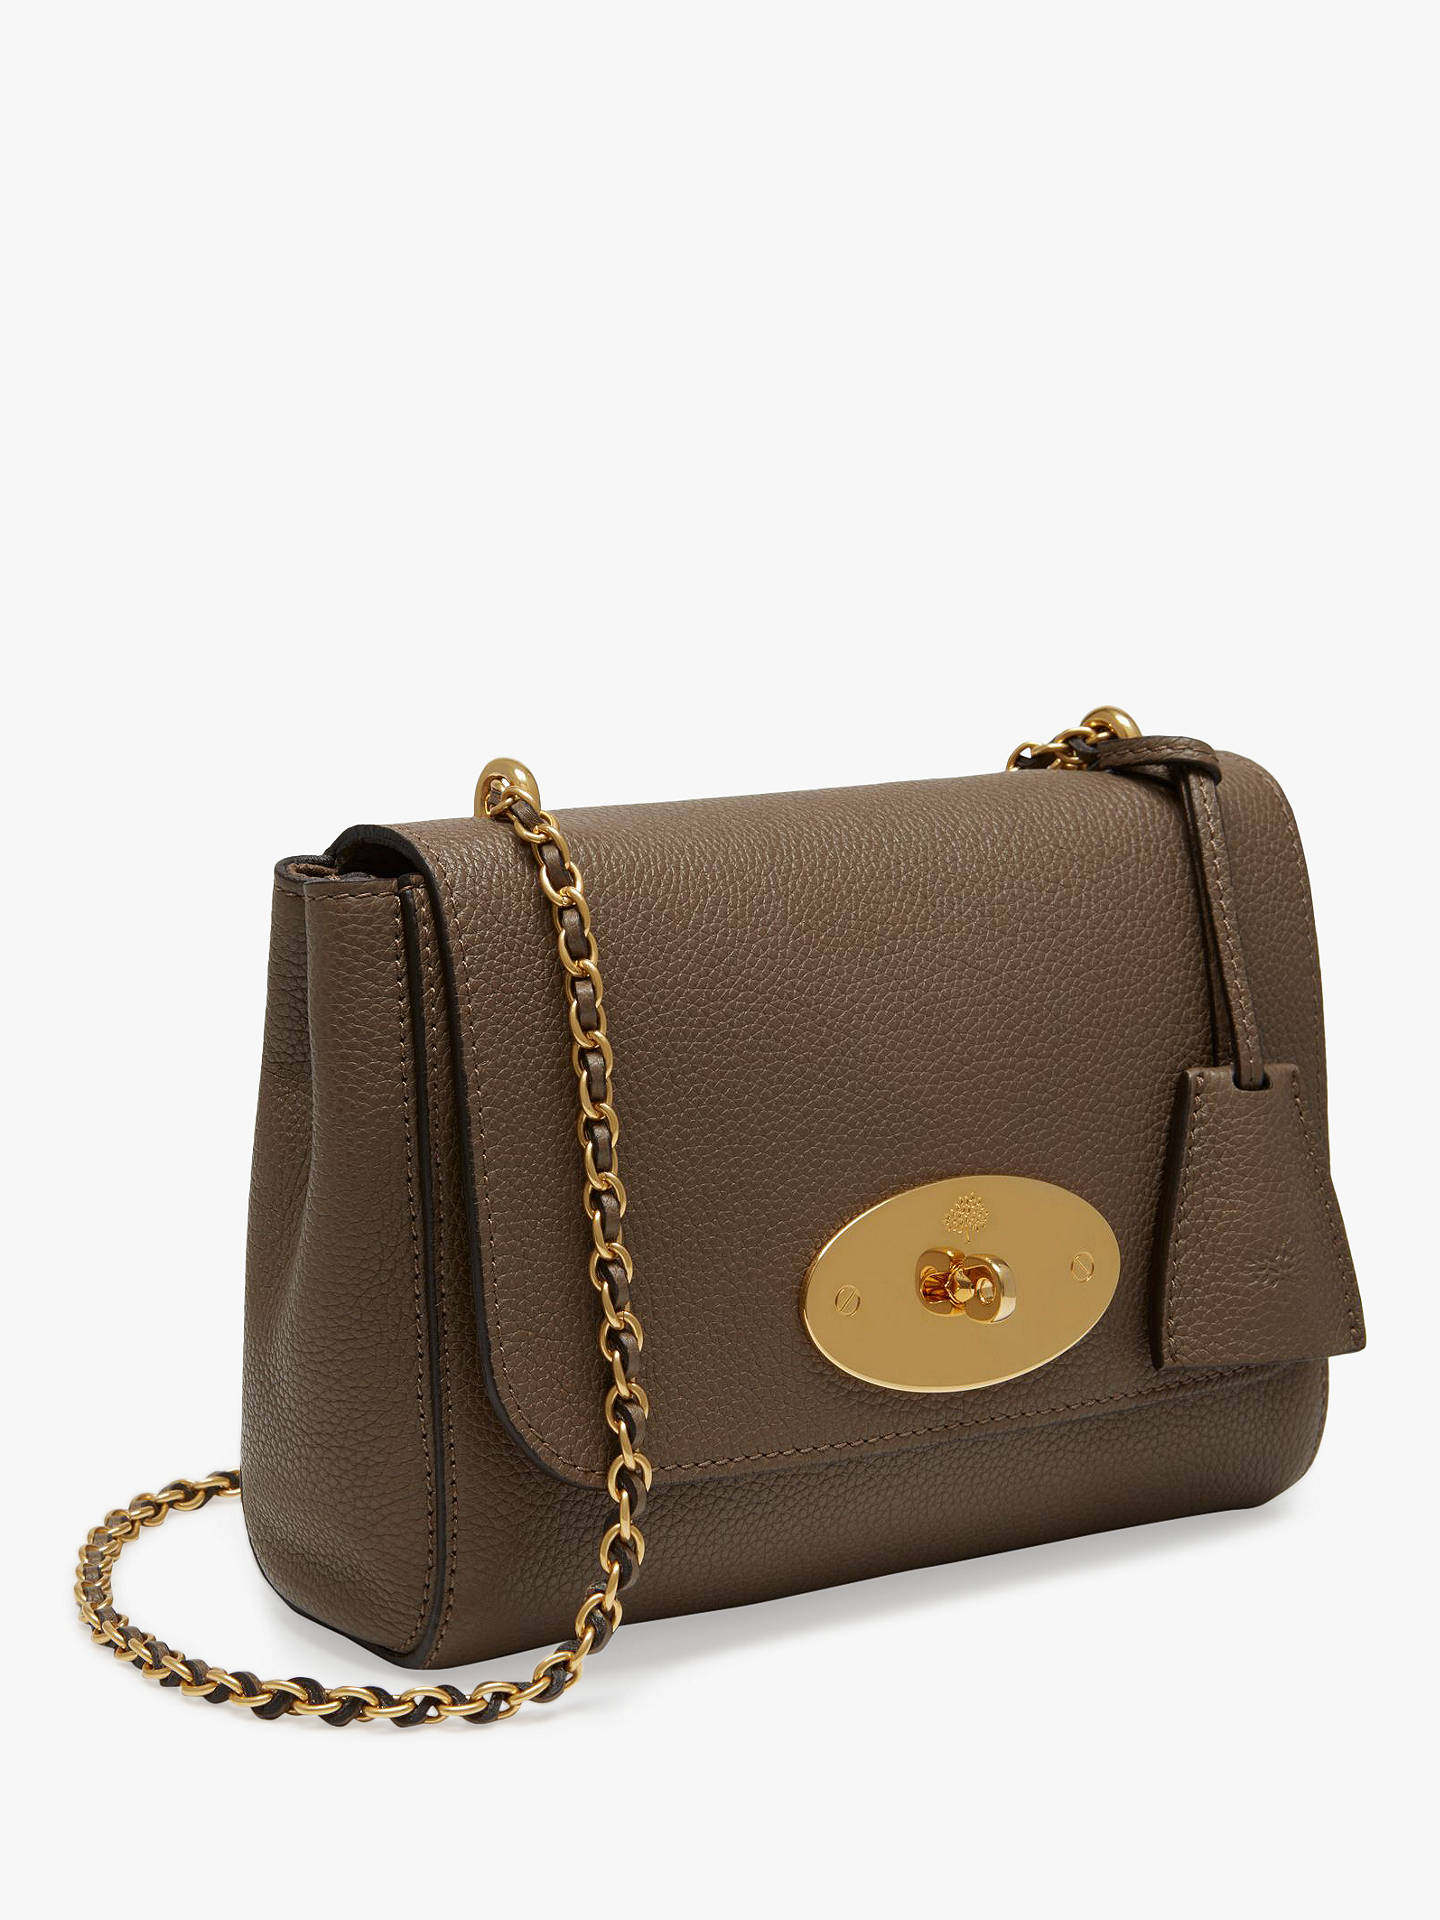 487e7bac68be Mulberry Lily Small Classic Grain Leather Cross Body Bag at John ...